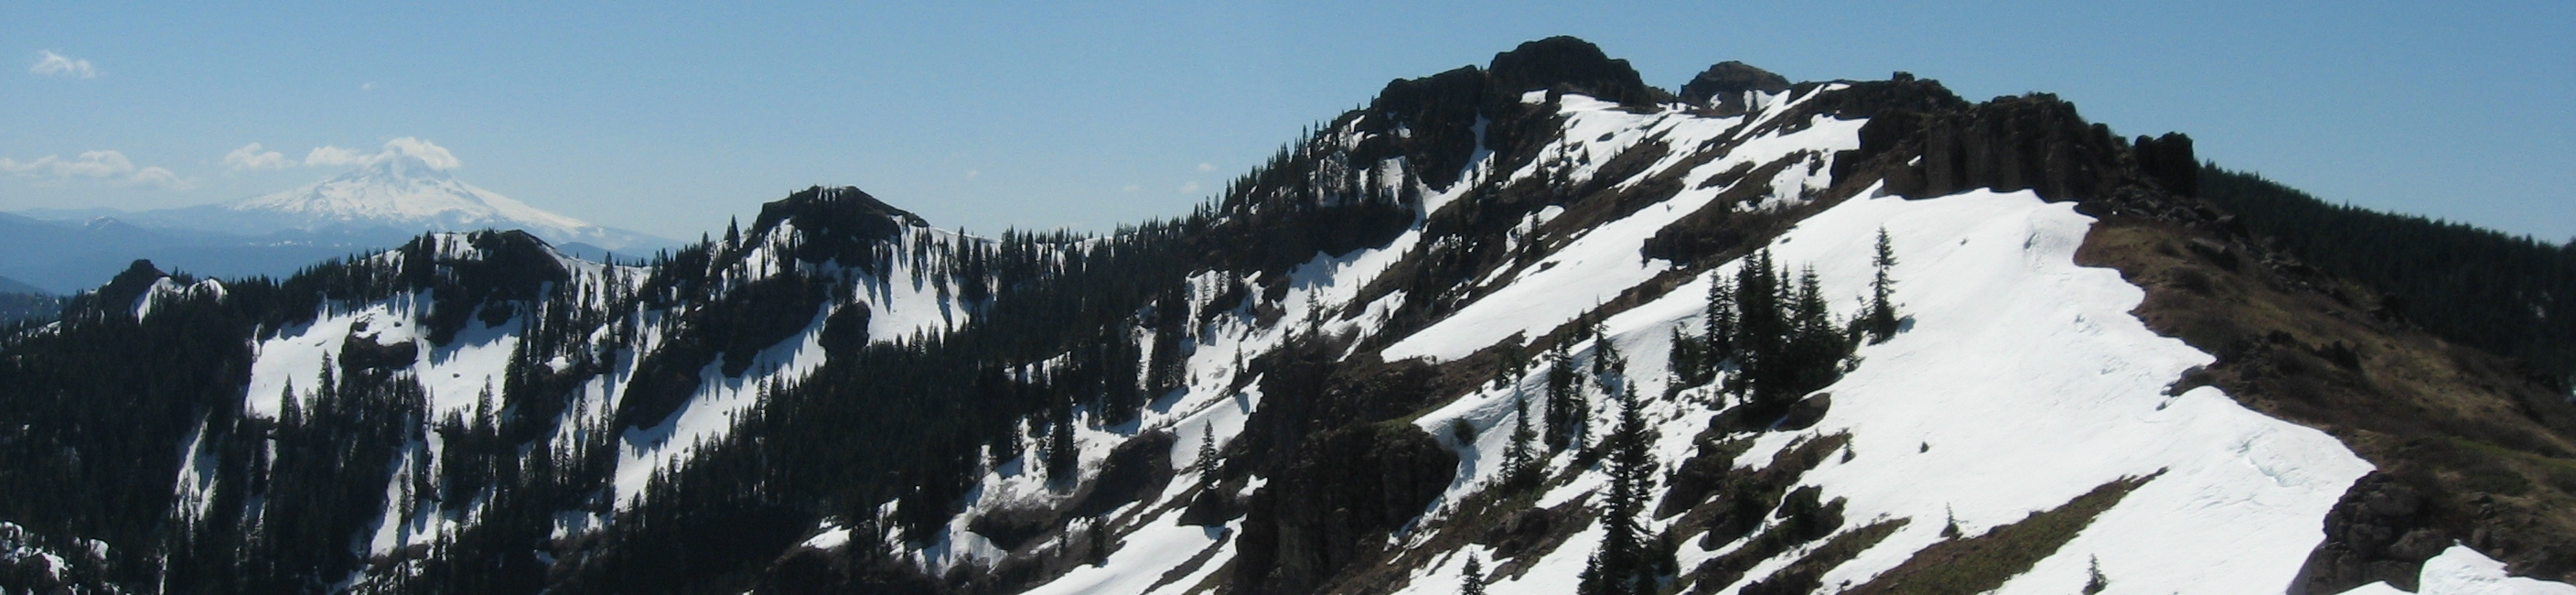 View from the Silver Star Trail - May 2013